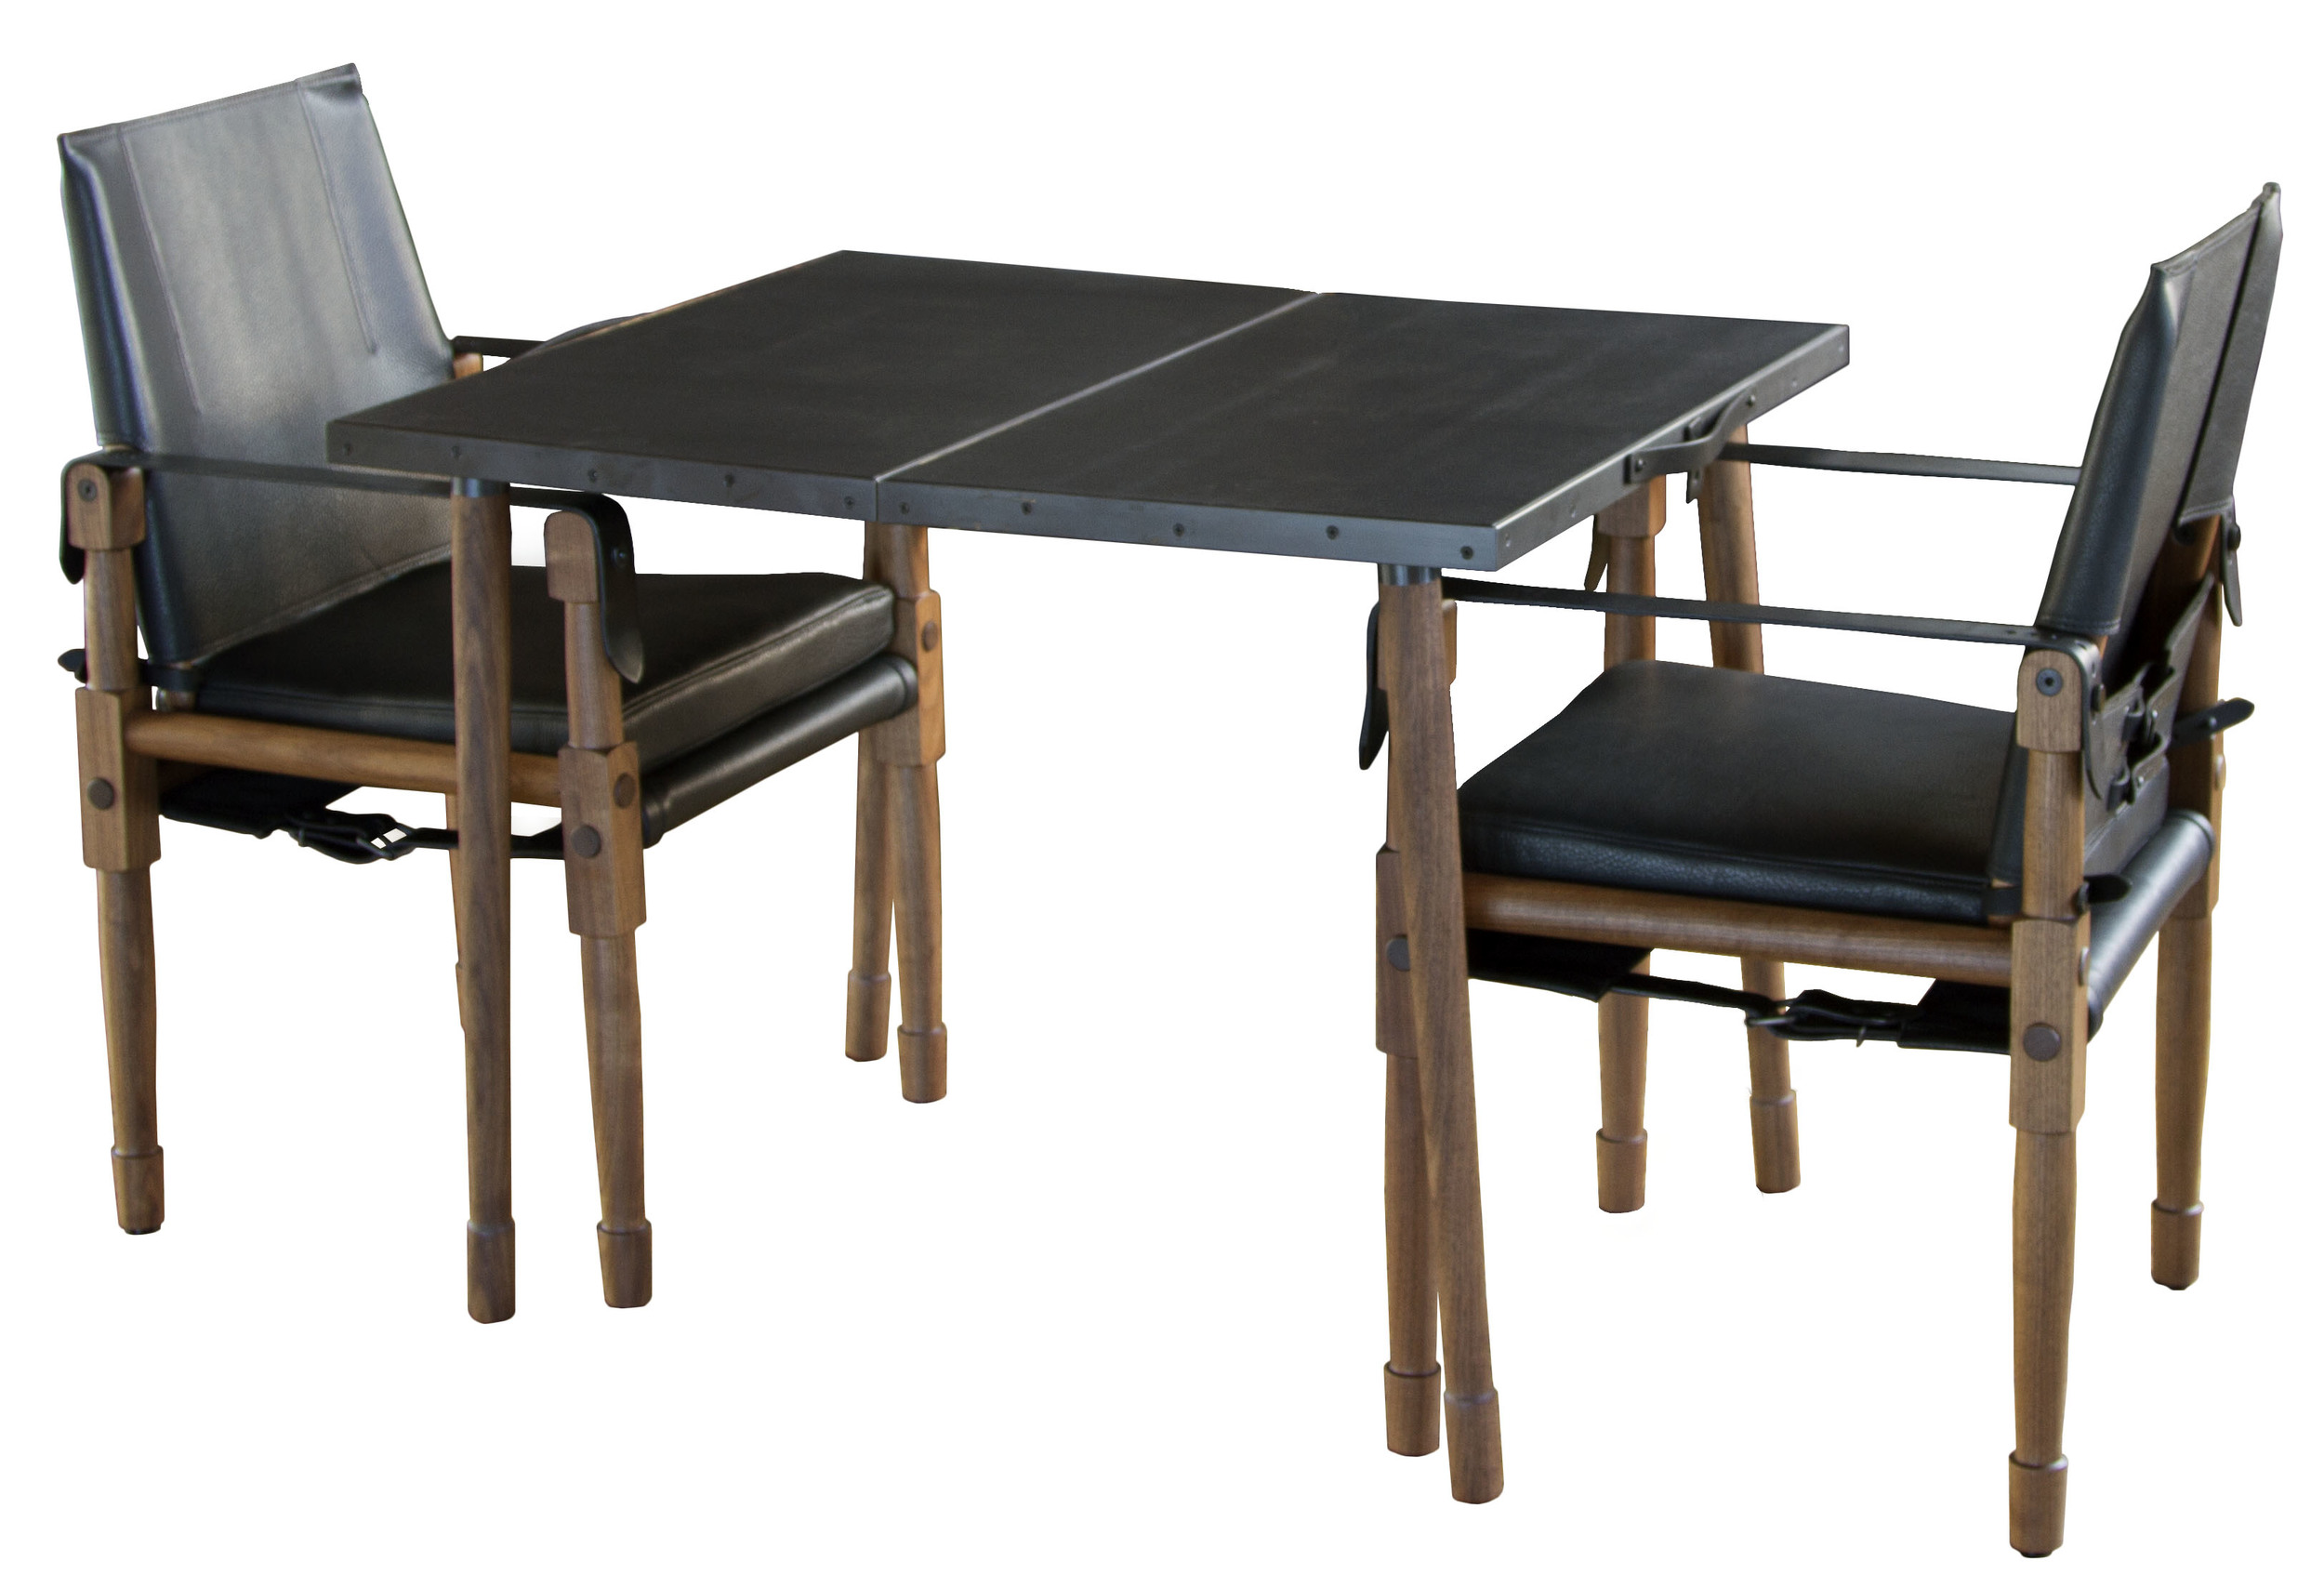 Collingwood Folding Table